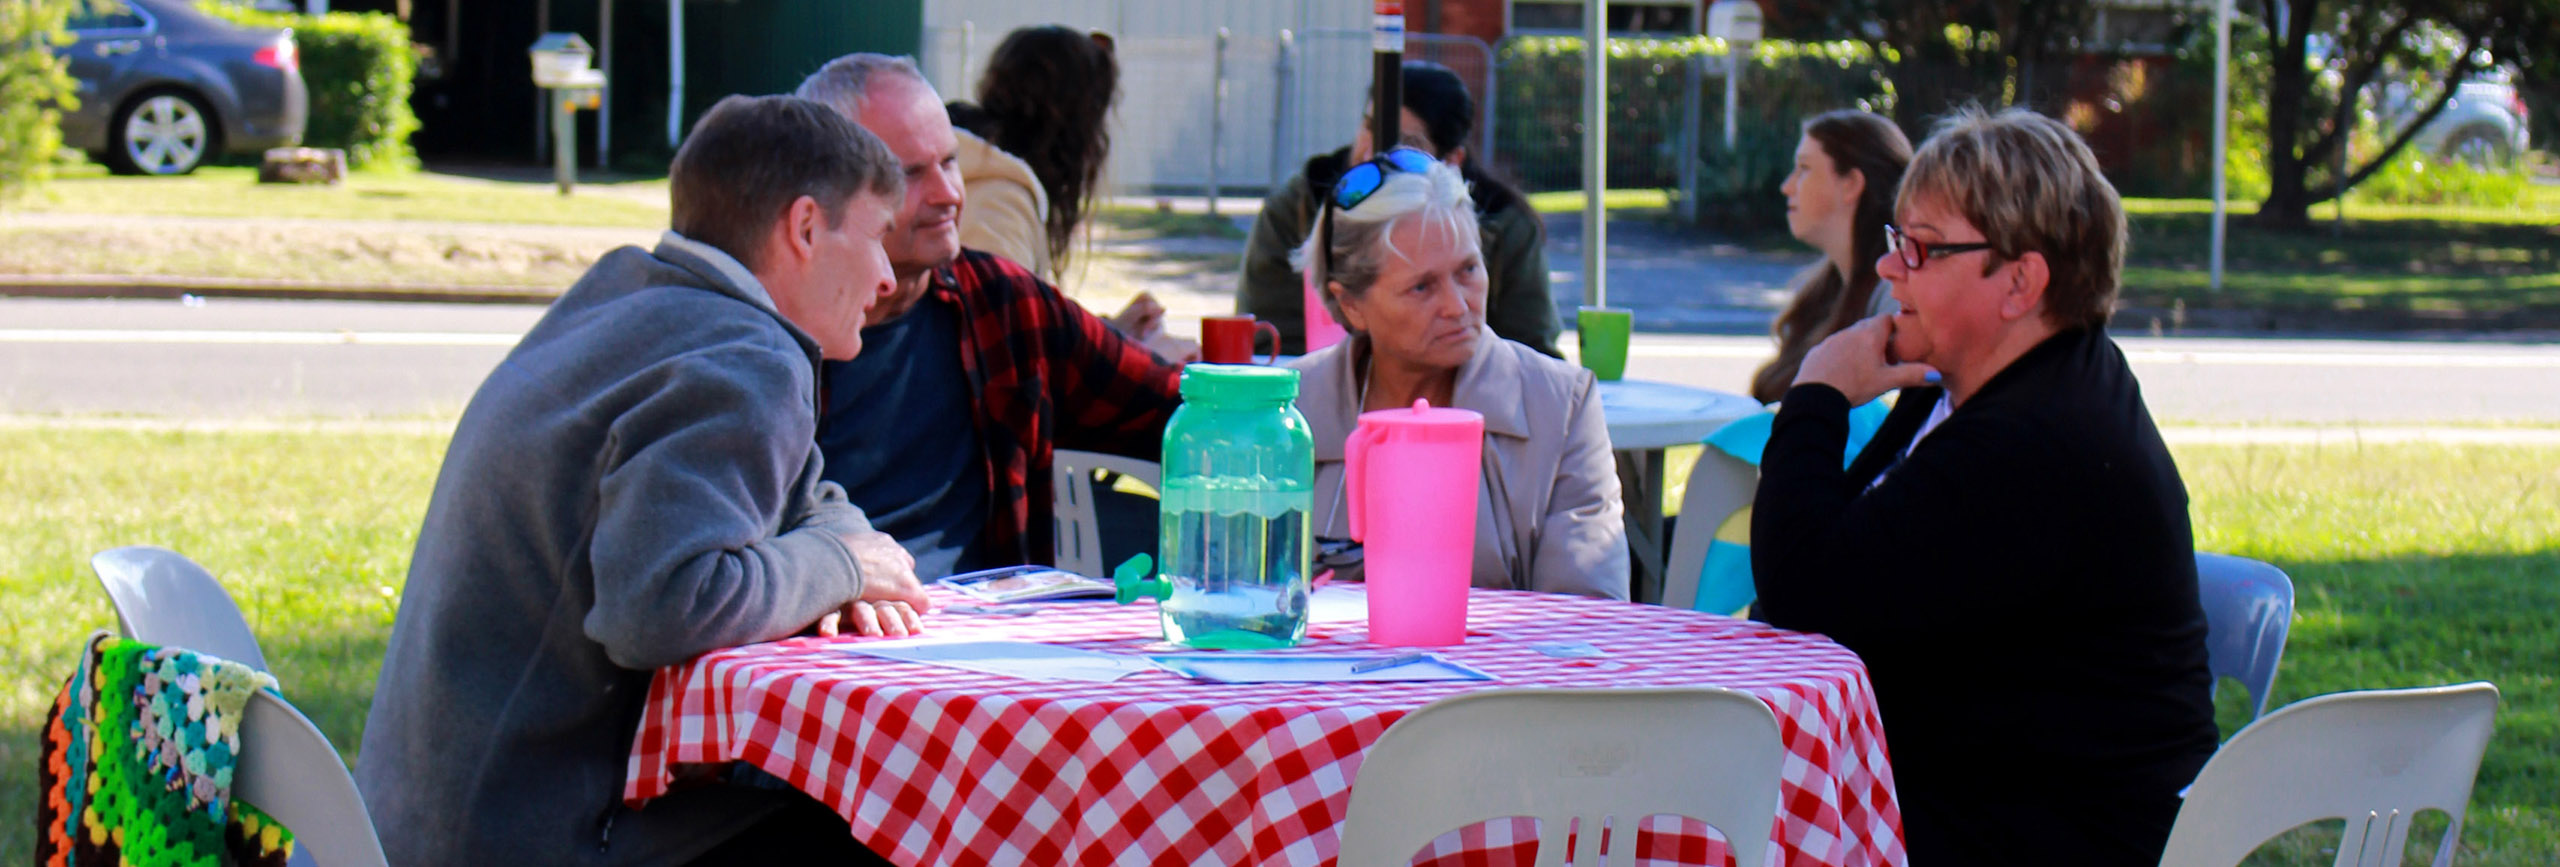 Group of people chatting at a table outdoors